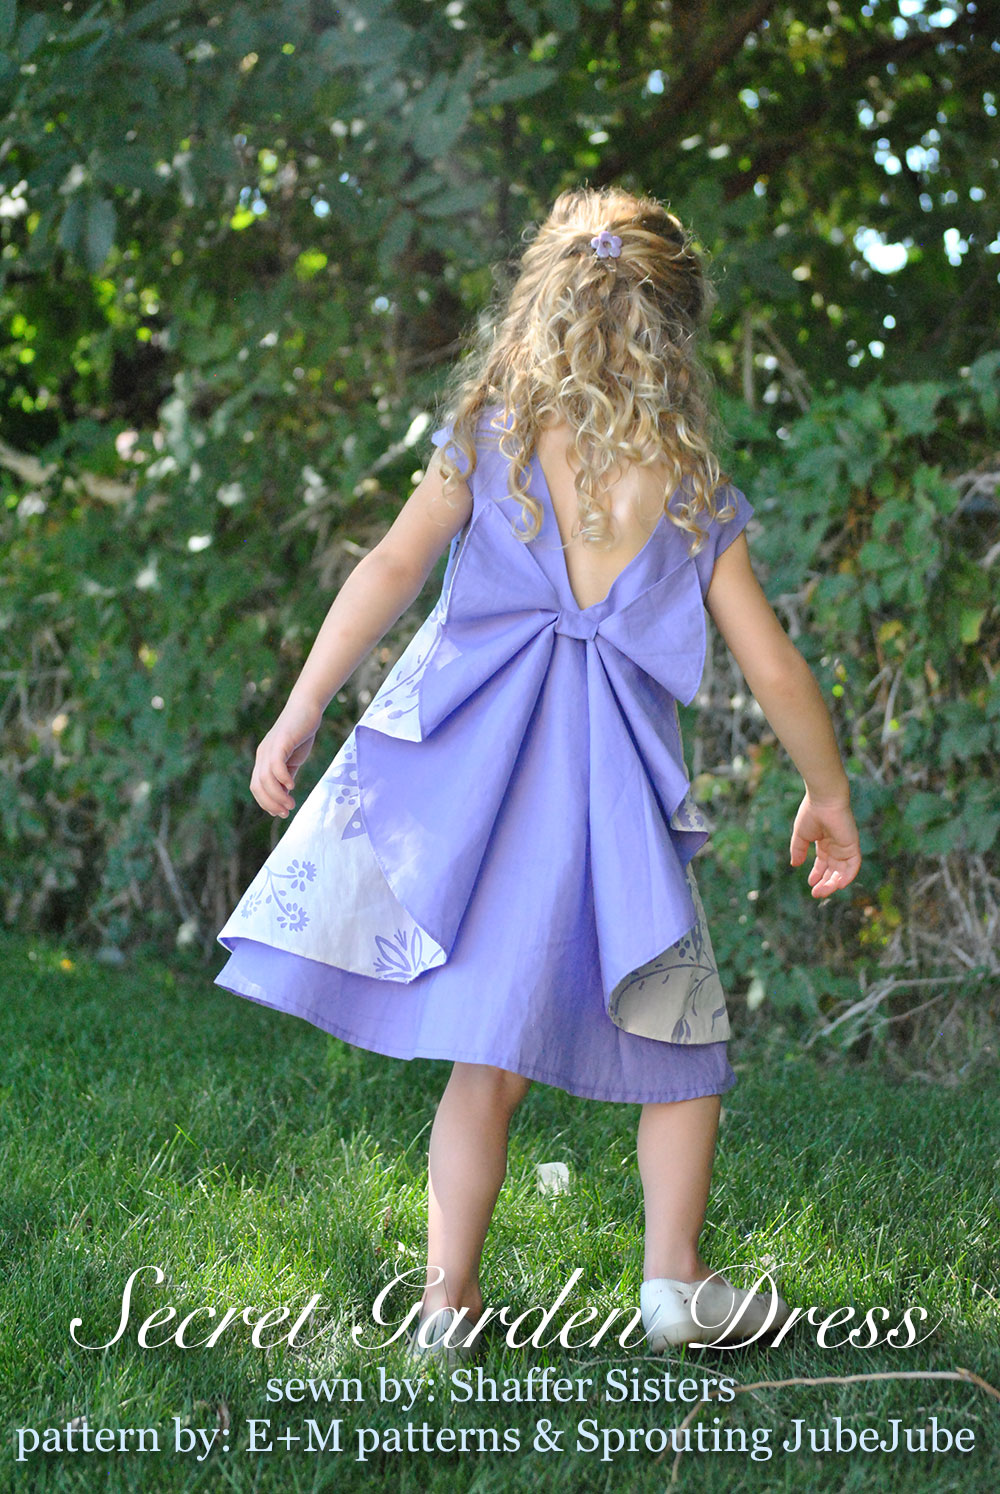 The dress garden - Today We Are So Excited To Share With You The Secret Garden Dress Which You Can Get Now By Using The Enter Code Sgtour25 For 25 Off The Dress Pattern